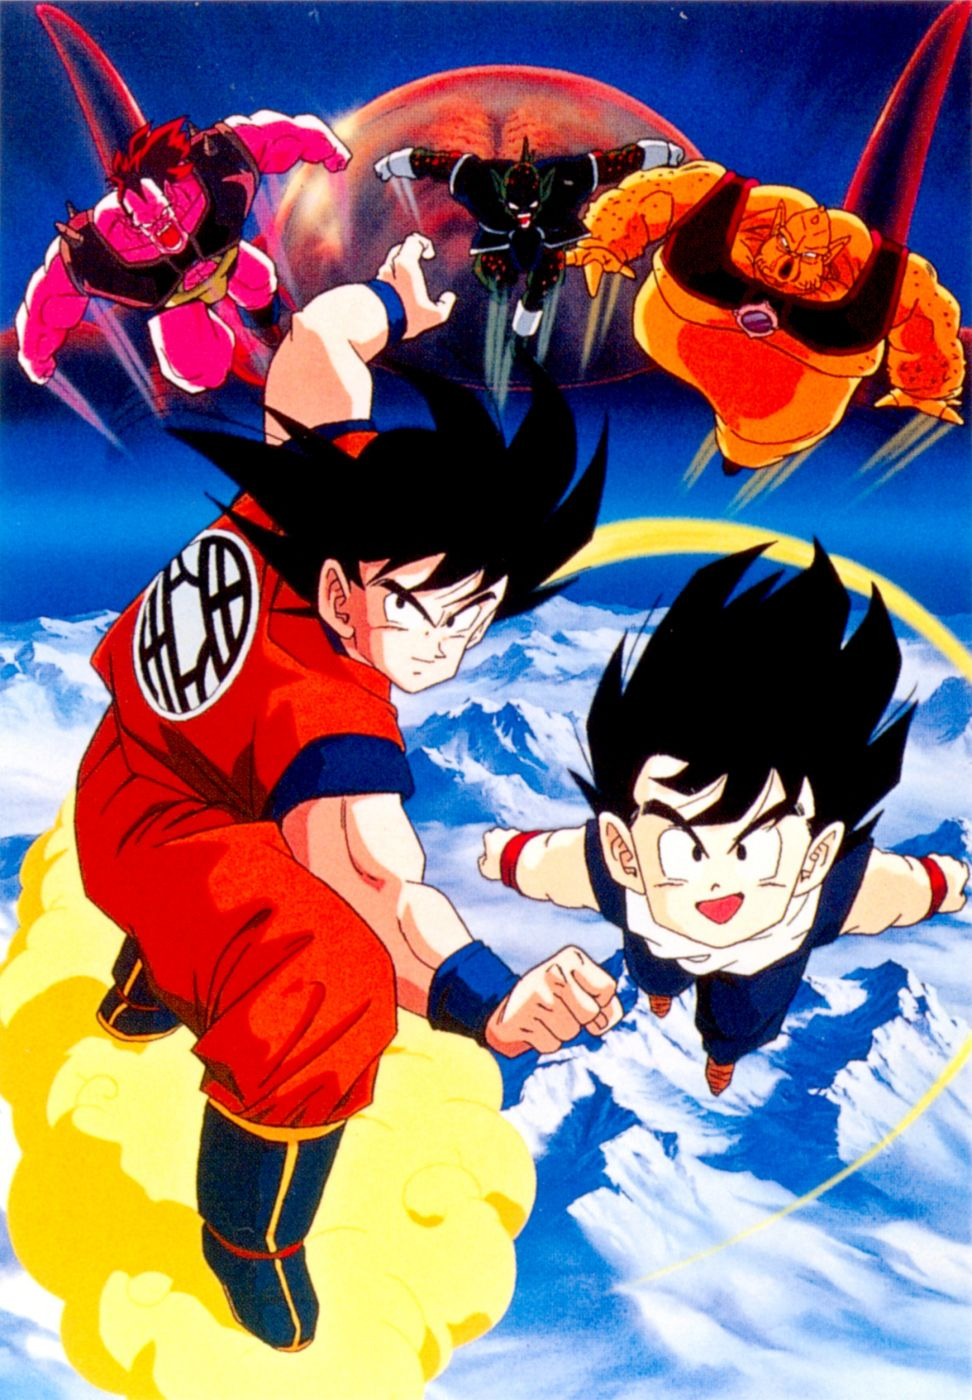 Gero Golden Boys goku and gohan in dbz: the world's strongest | anime, dragon